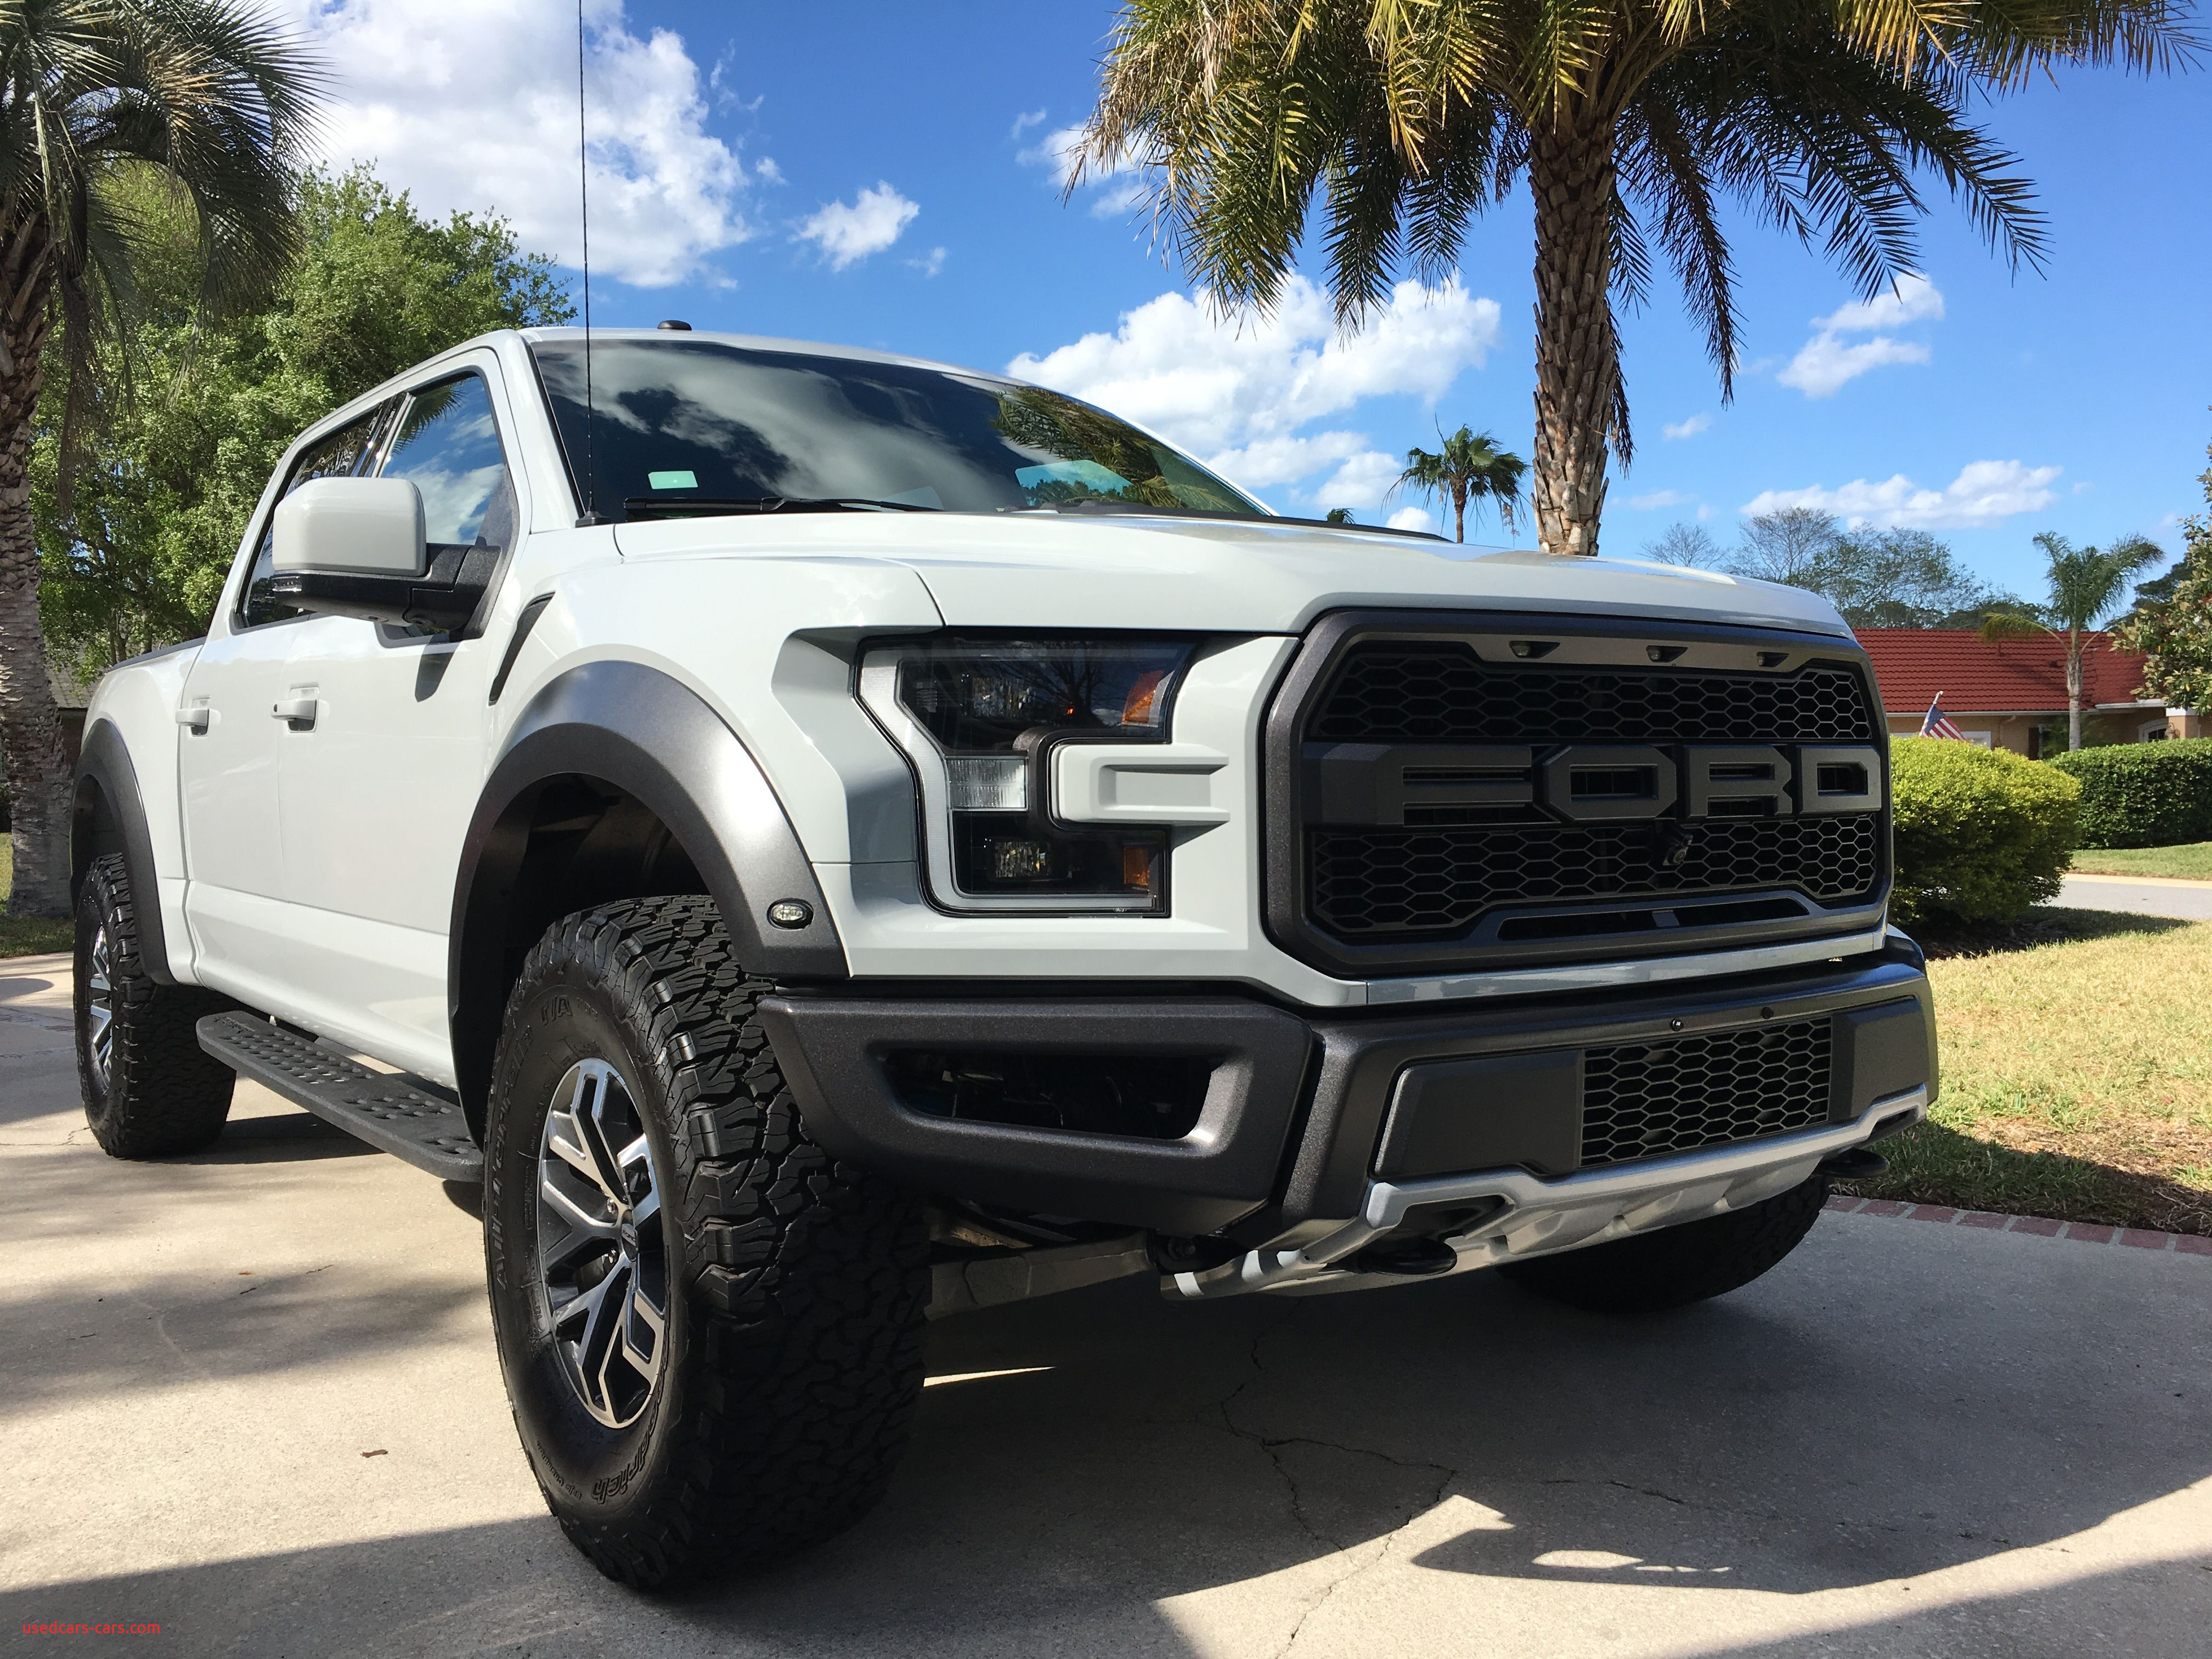 How Much Raptor ford 2020 Beautiful Brand New Avalanche Grey ford F150 Raptor with